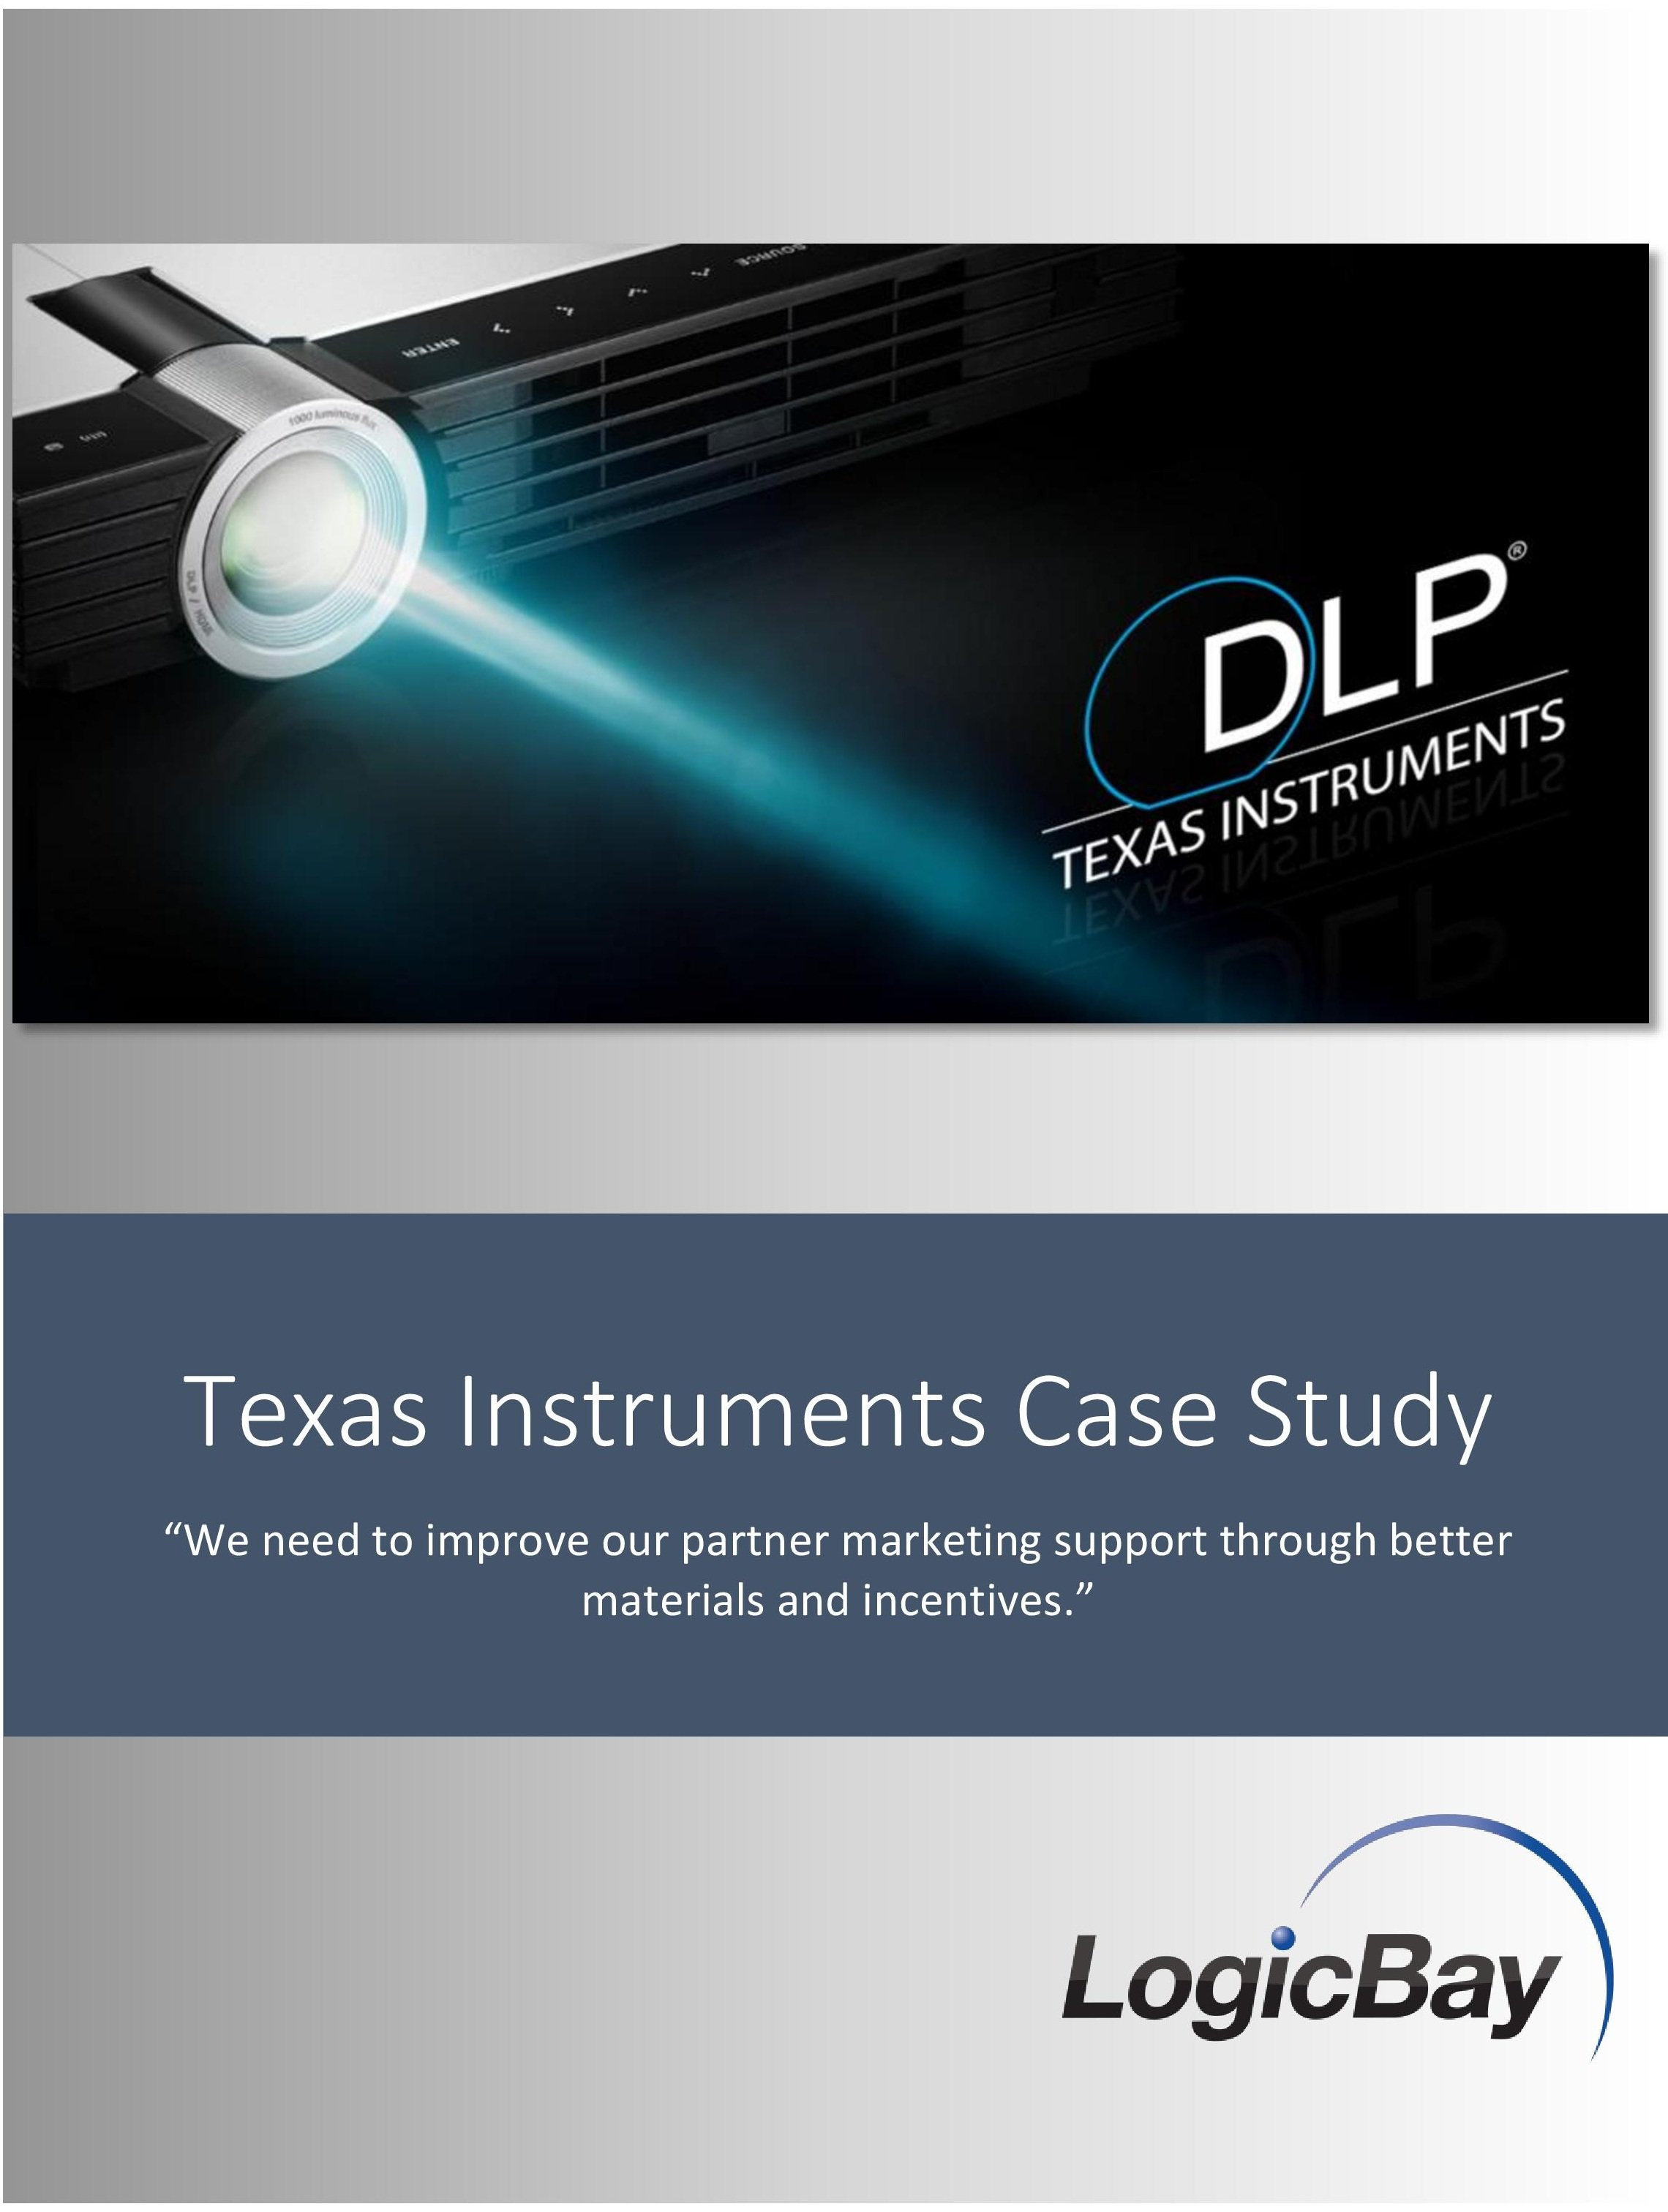 alliston instruments case study essay In a case study, texas instruments (ti) spends $111 billion to repurchase 212% of its outstanding shares  papers 3,633 this journal is curated by: bernard s.